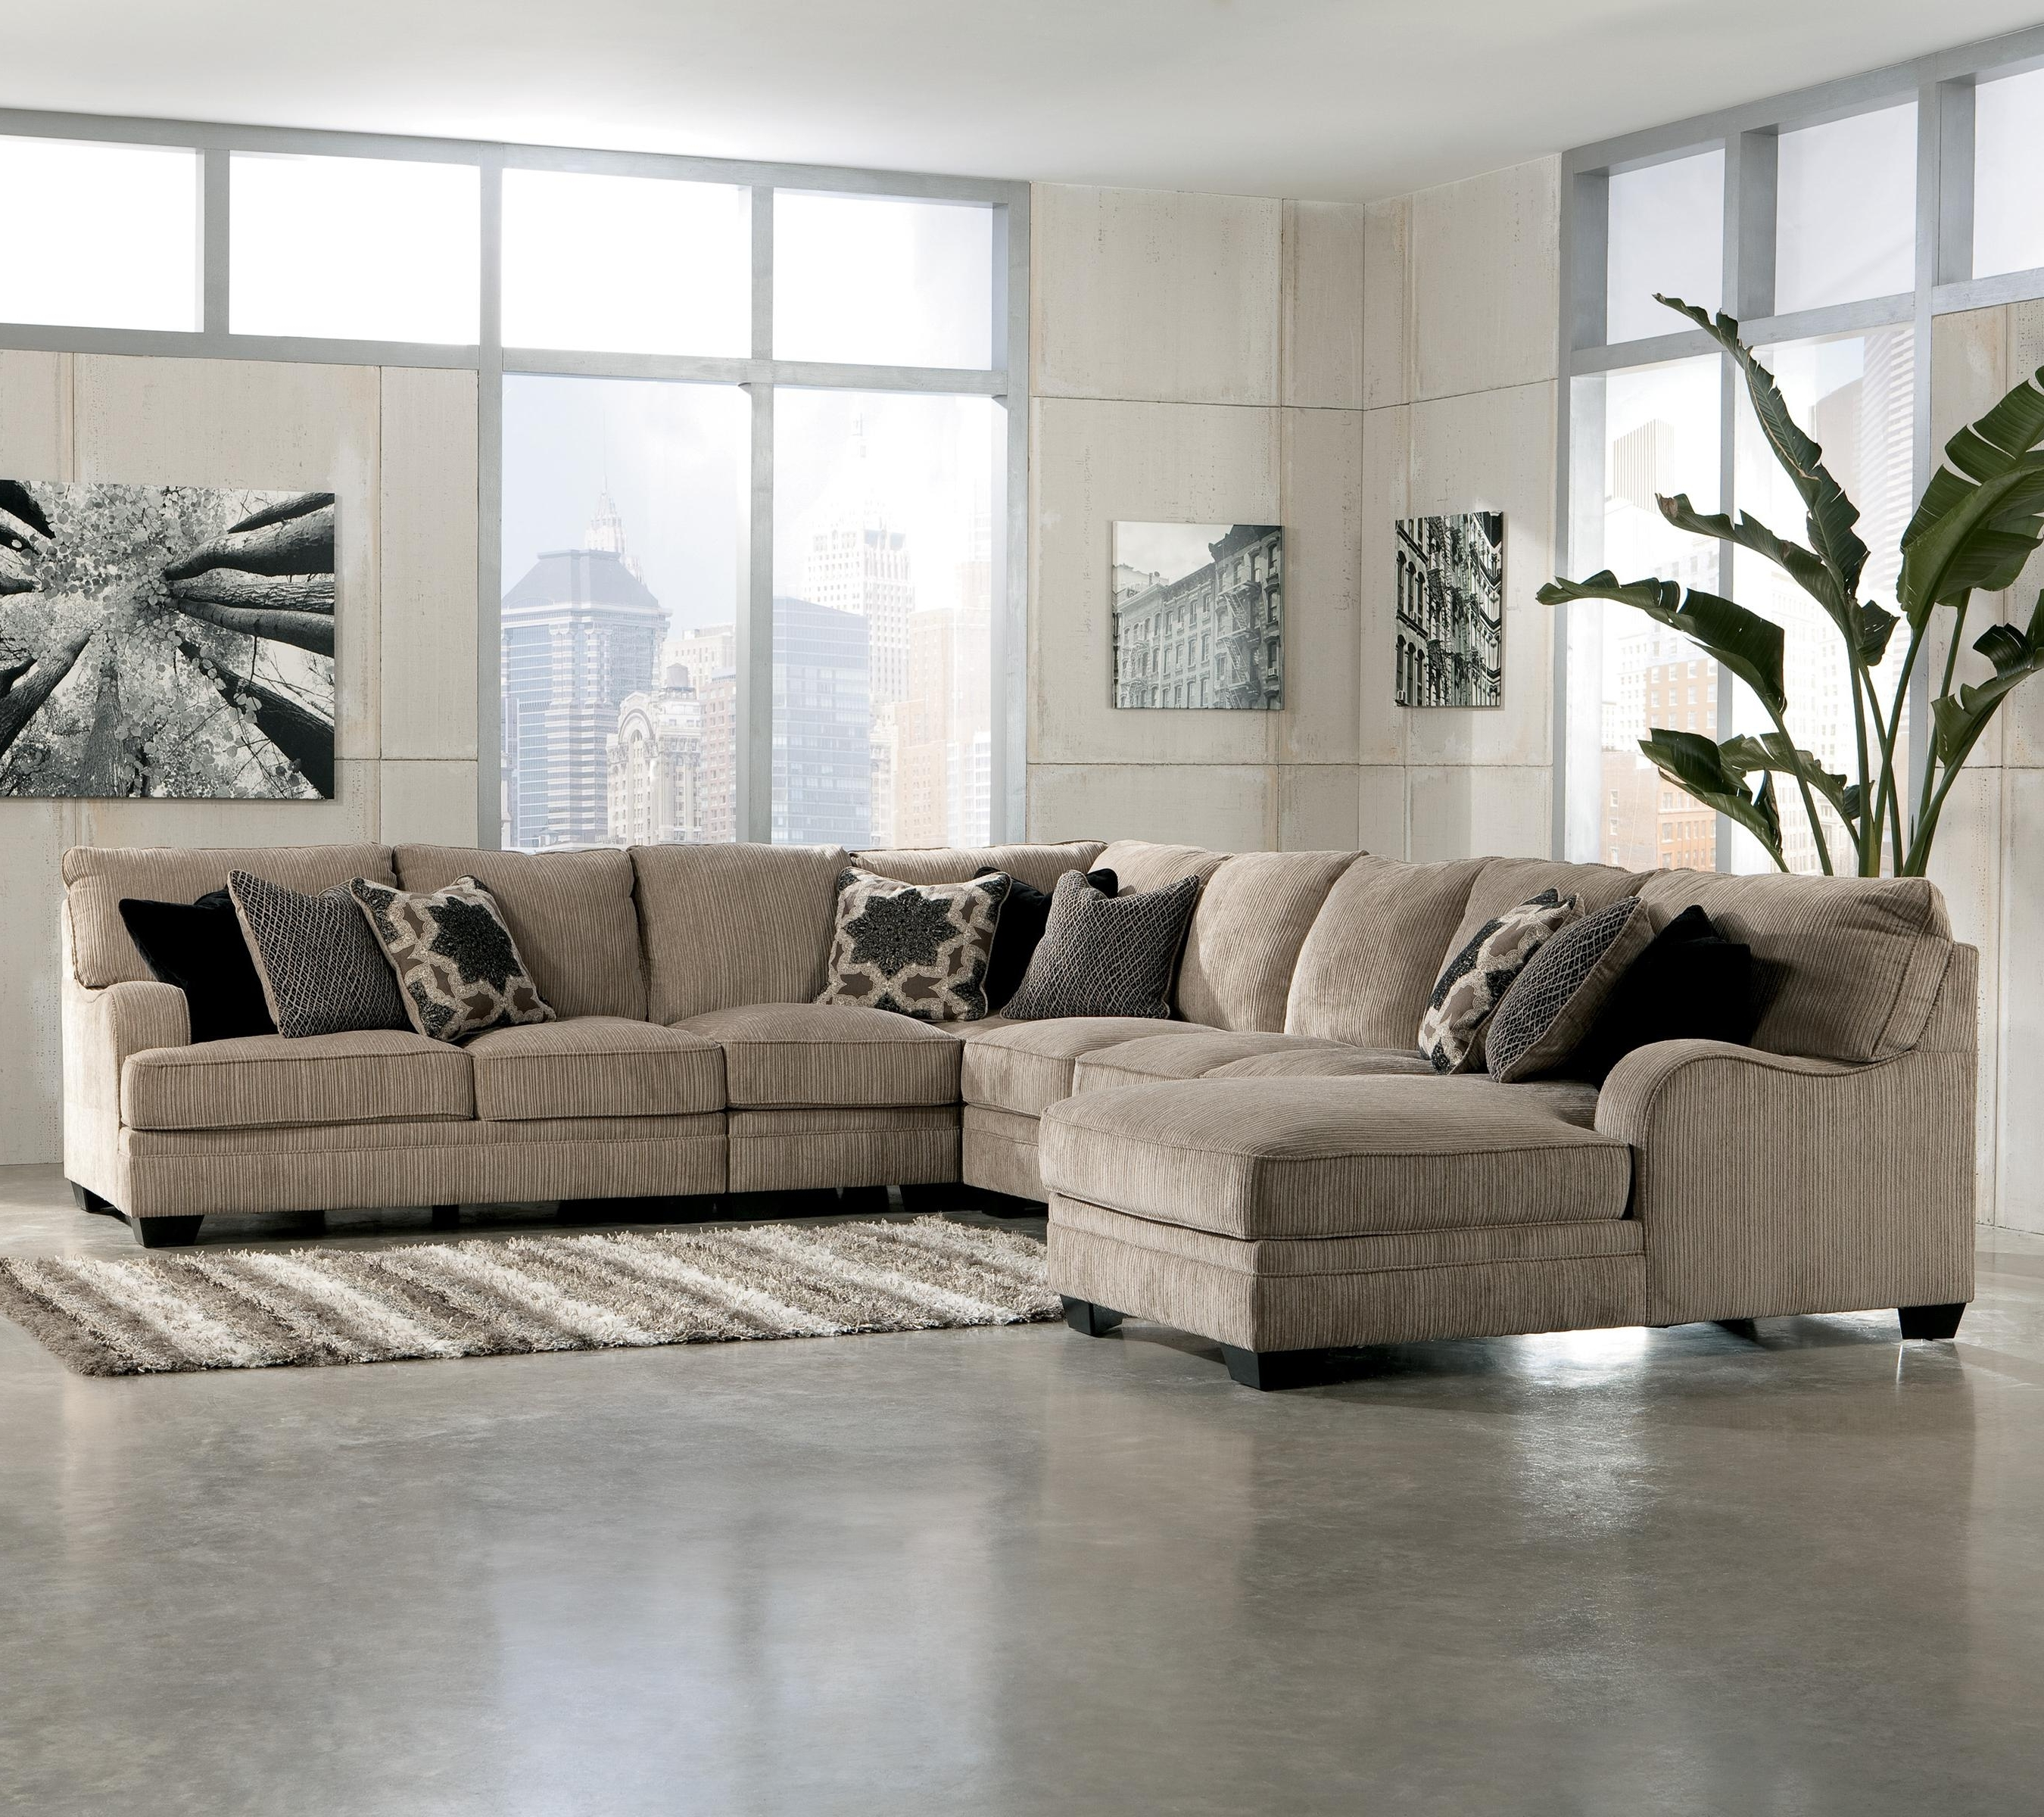 Widely Used Living Room Sectional: Katisha 4 Piece Sectionalashley Intended For Sectional Sofas At Ashley (View 11 of 20)